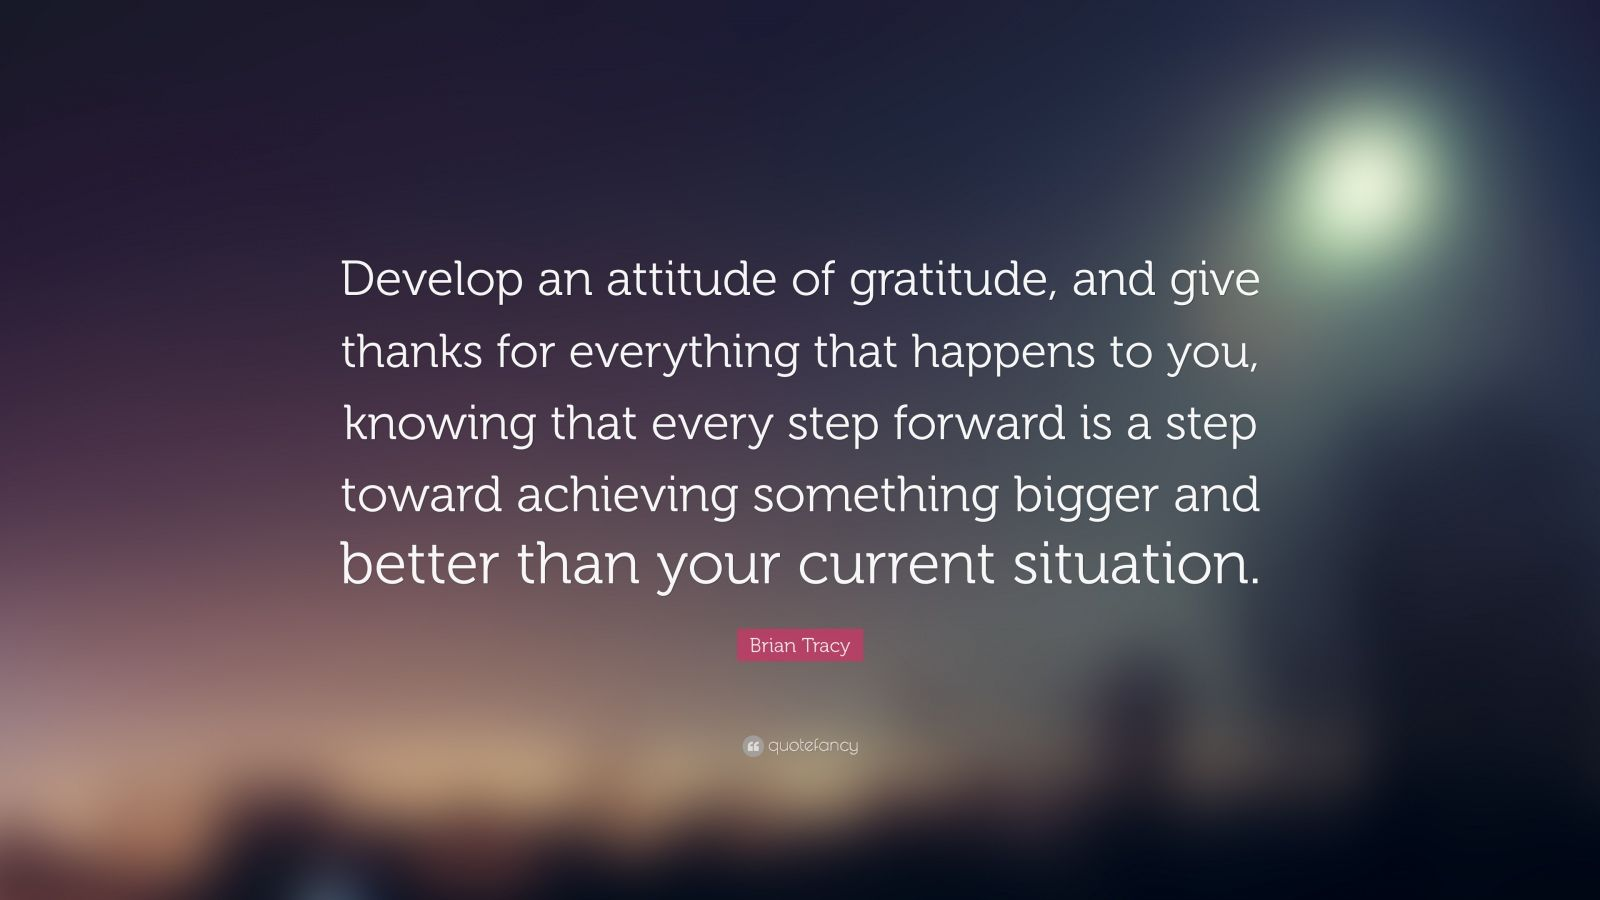 Motivational Quotes On Attitude Wallpapers Brian Tracy Quote Develop An Attitude Of Gratitude And